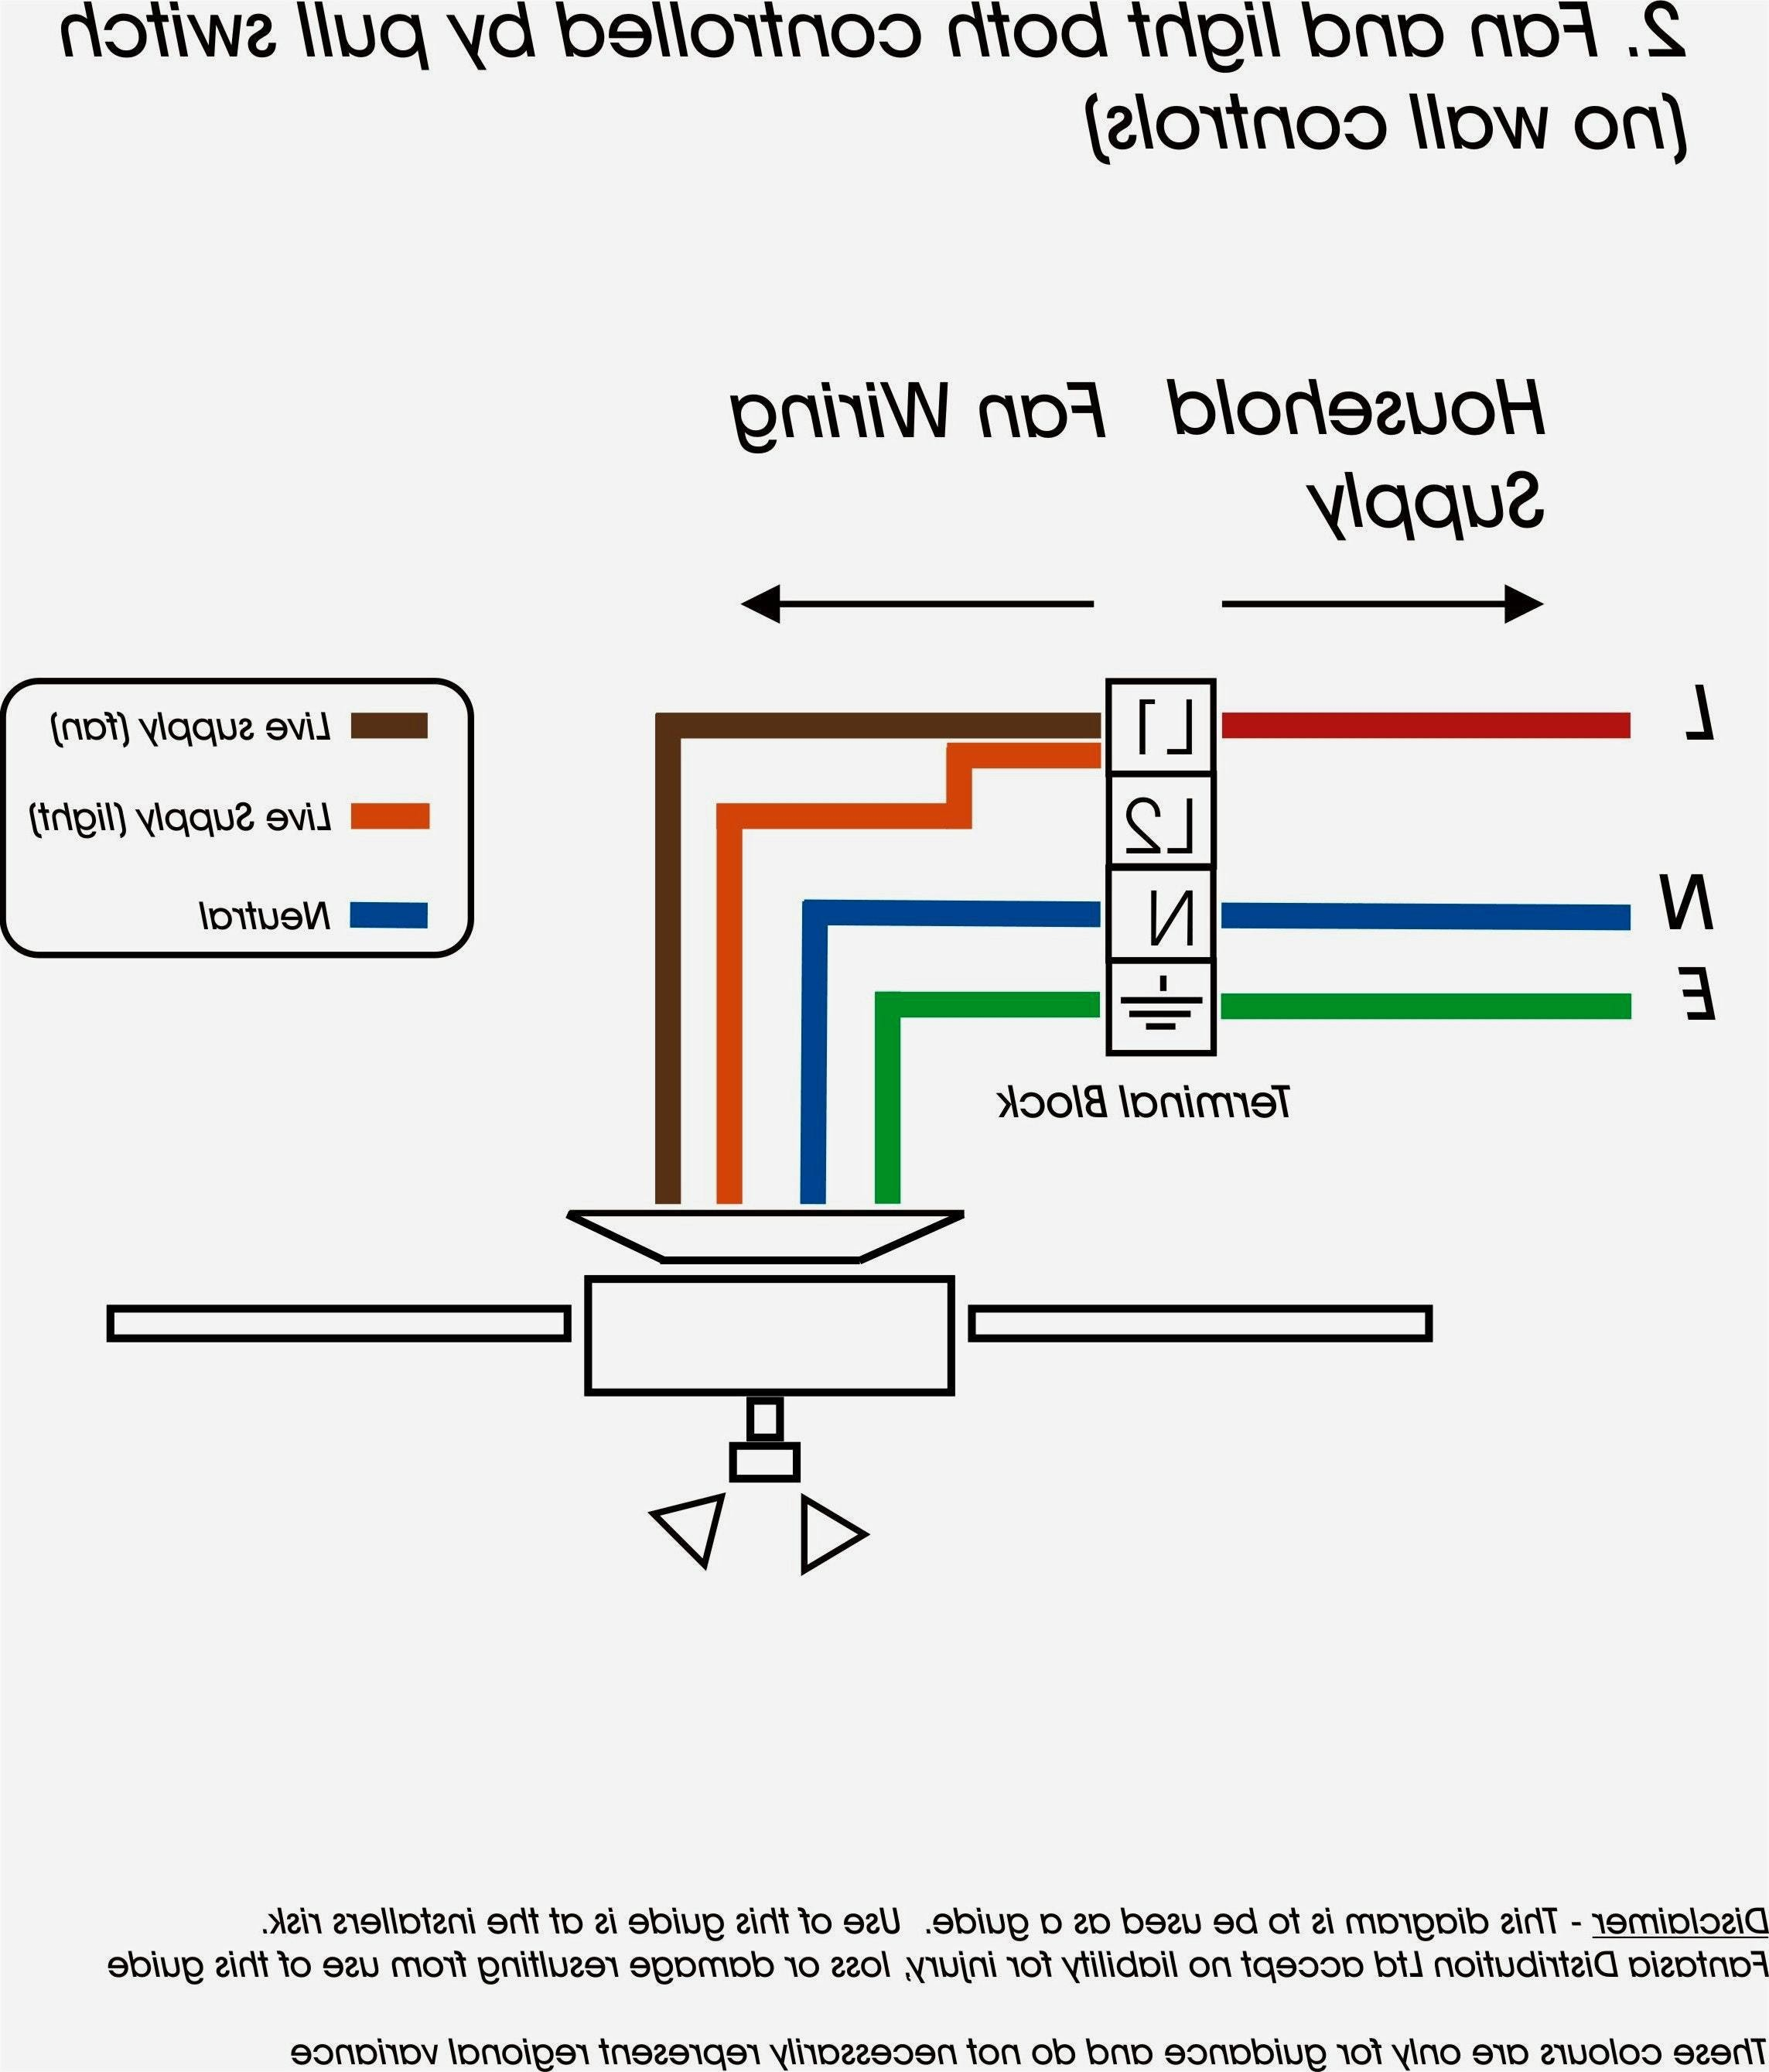 carling toggle switch wiring diagram Collection-Carling Technologies Rocker Switch Wiring Diagram Lovely Unusual How to Wire A Rotary Switch Contemporary Electrical 16-k